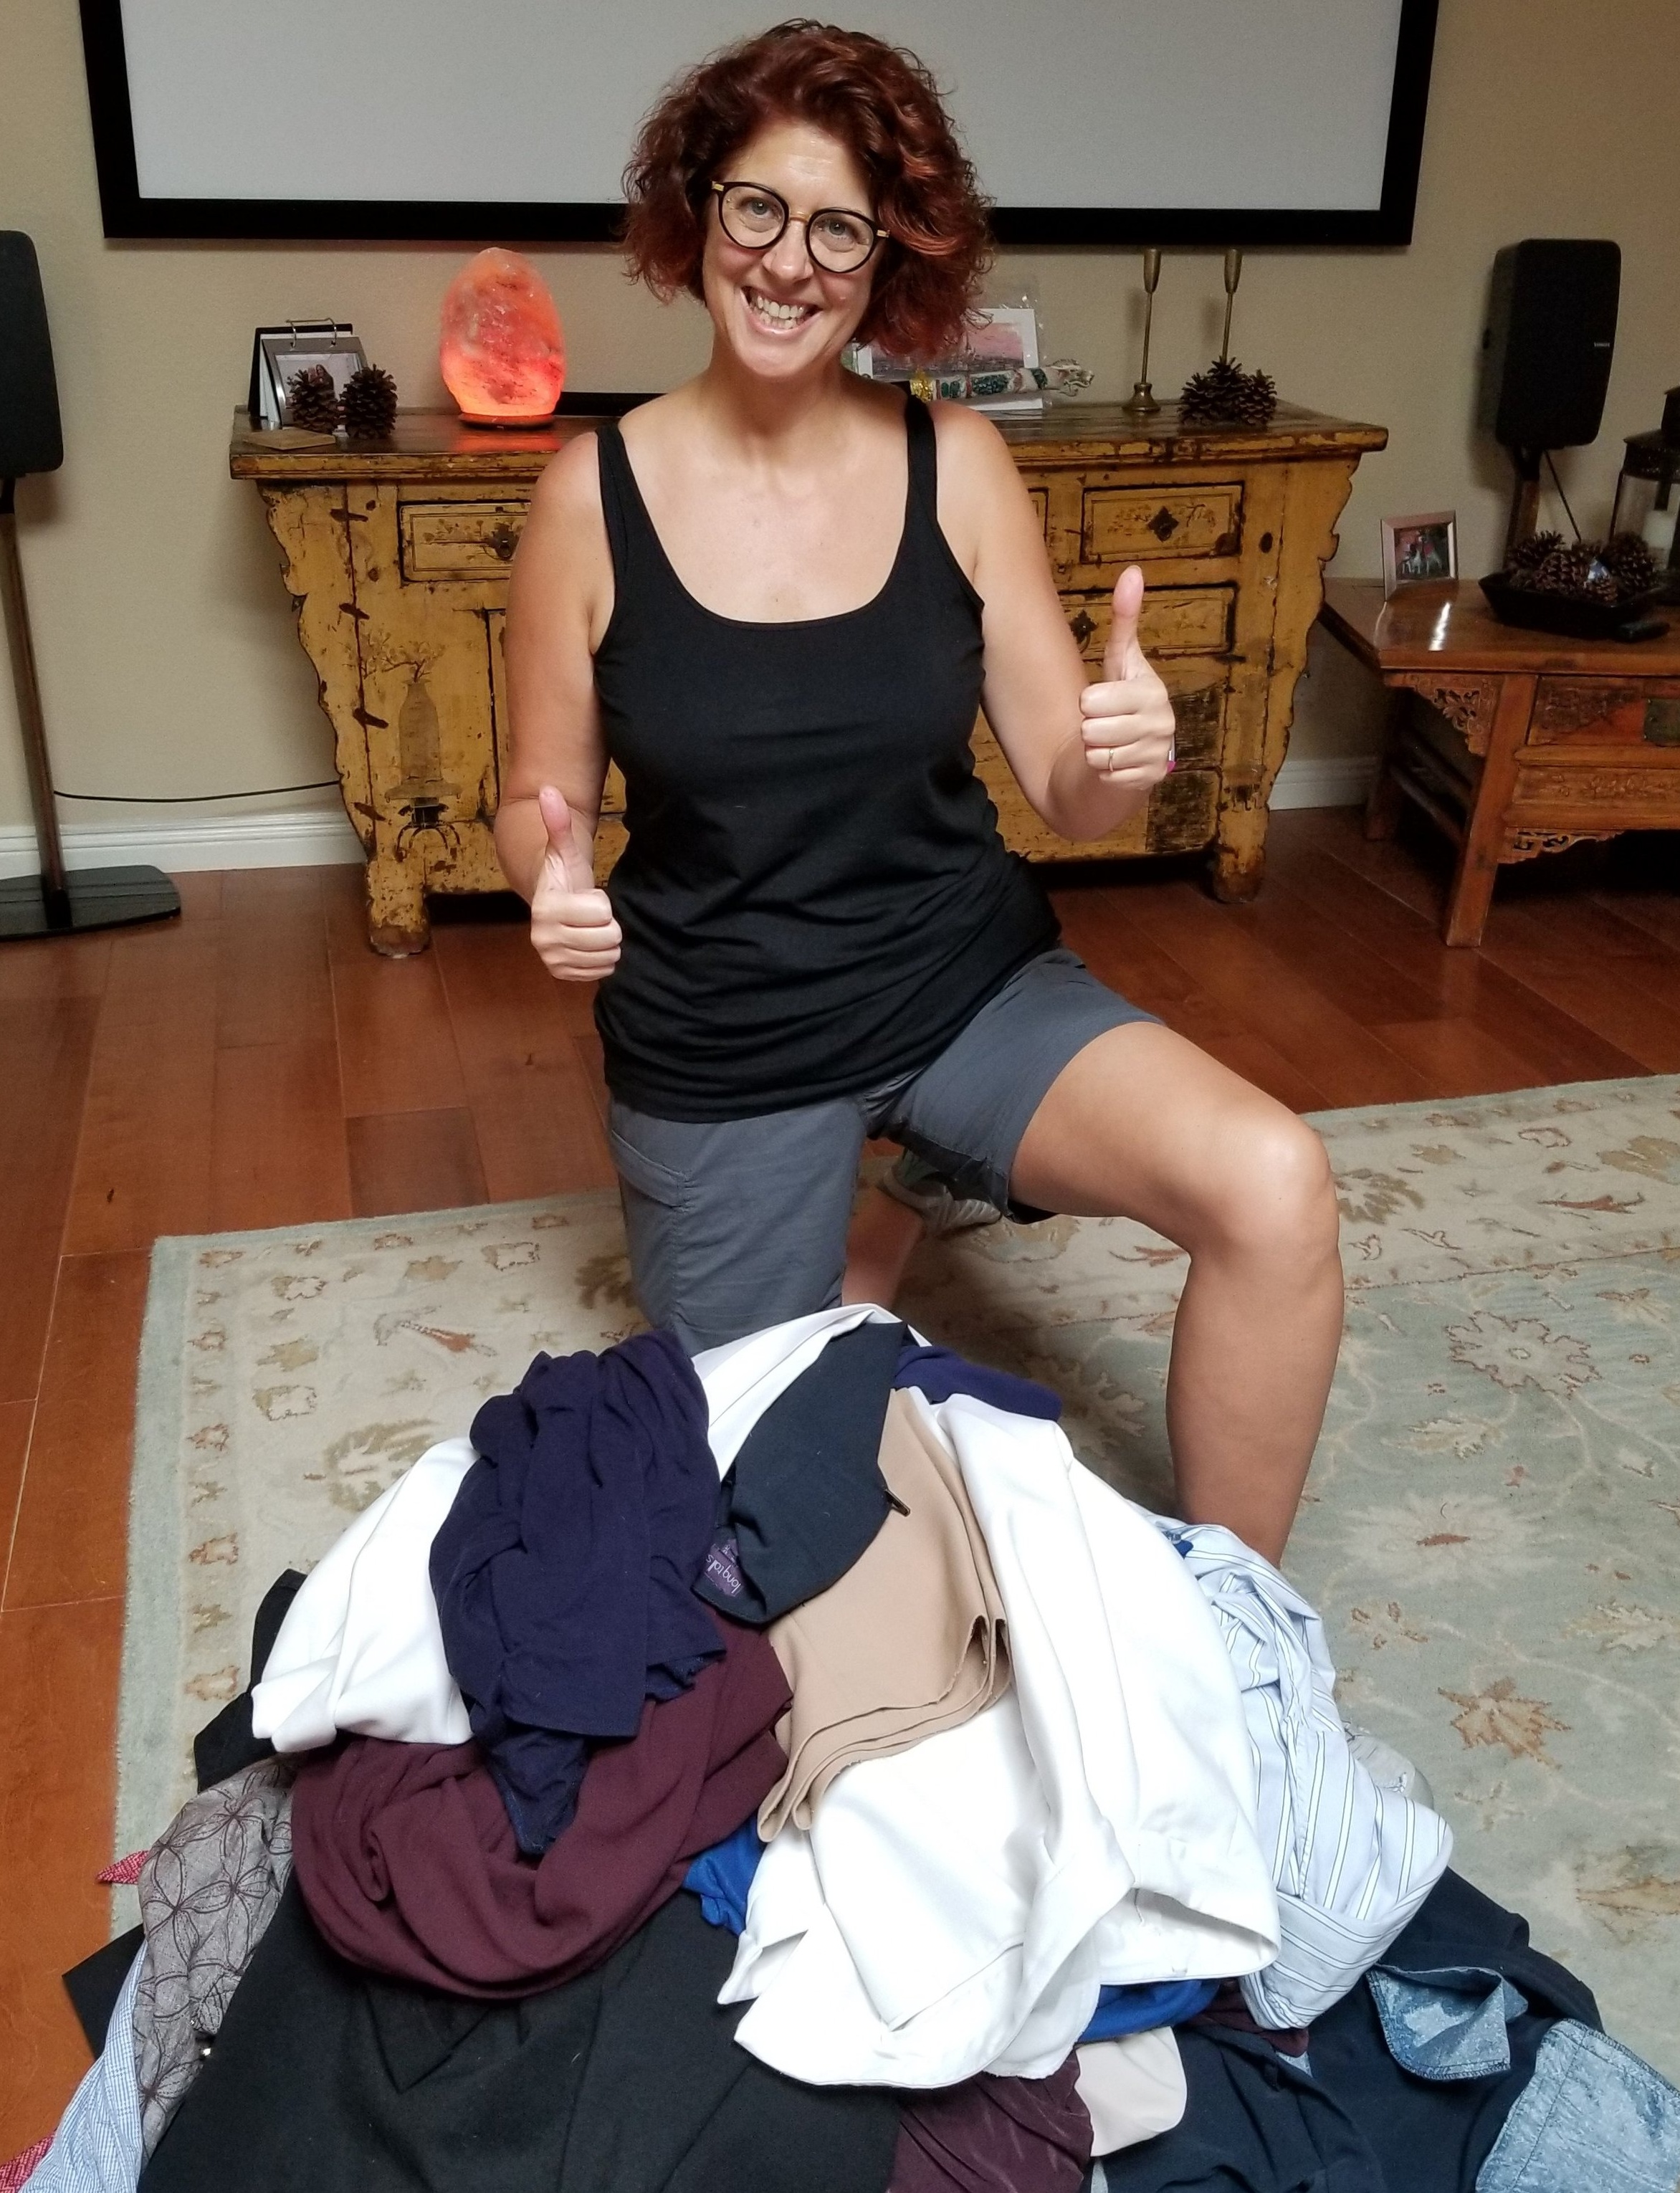 Post WildFit Challenge Closet Clean out, August 2018